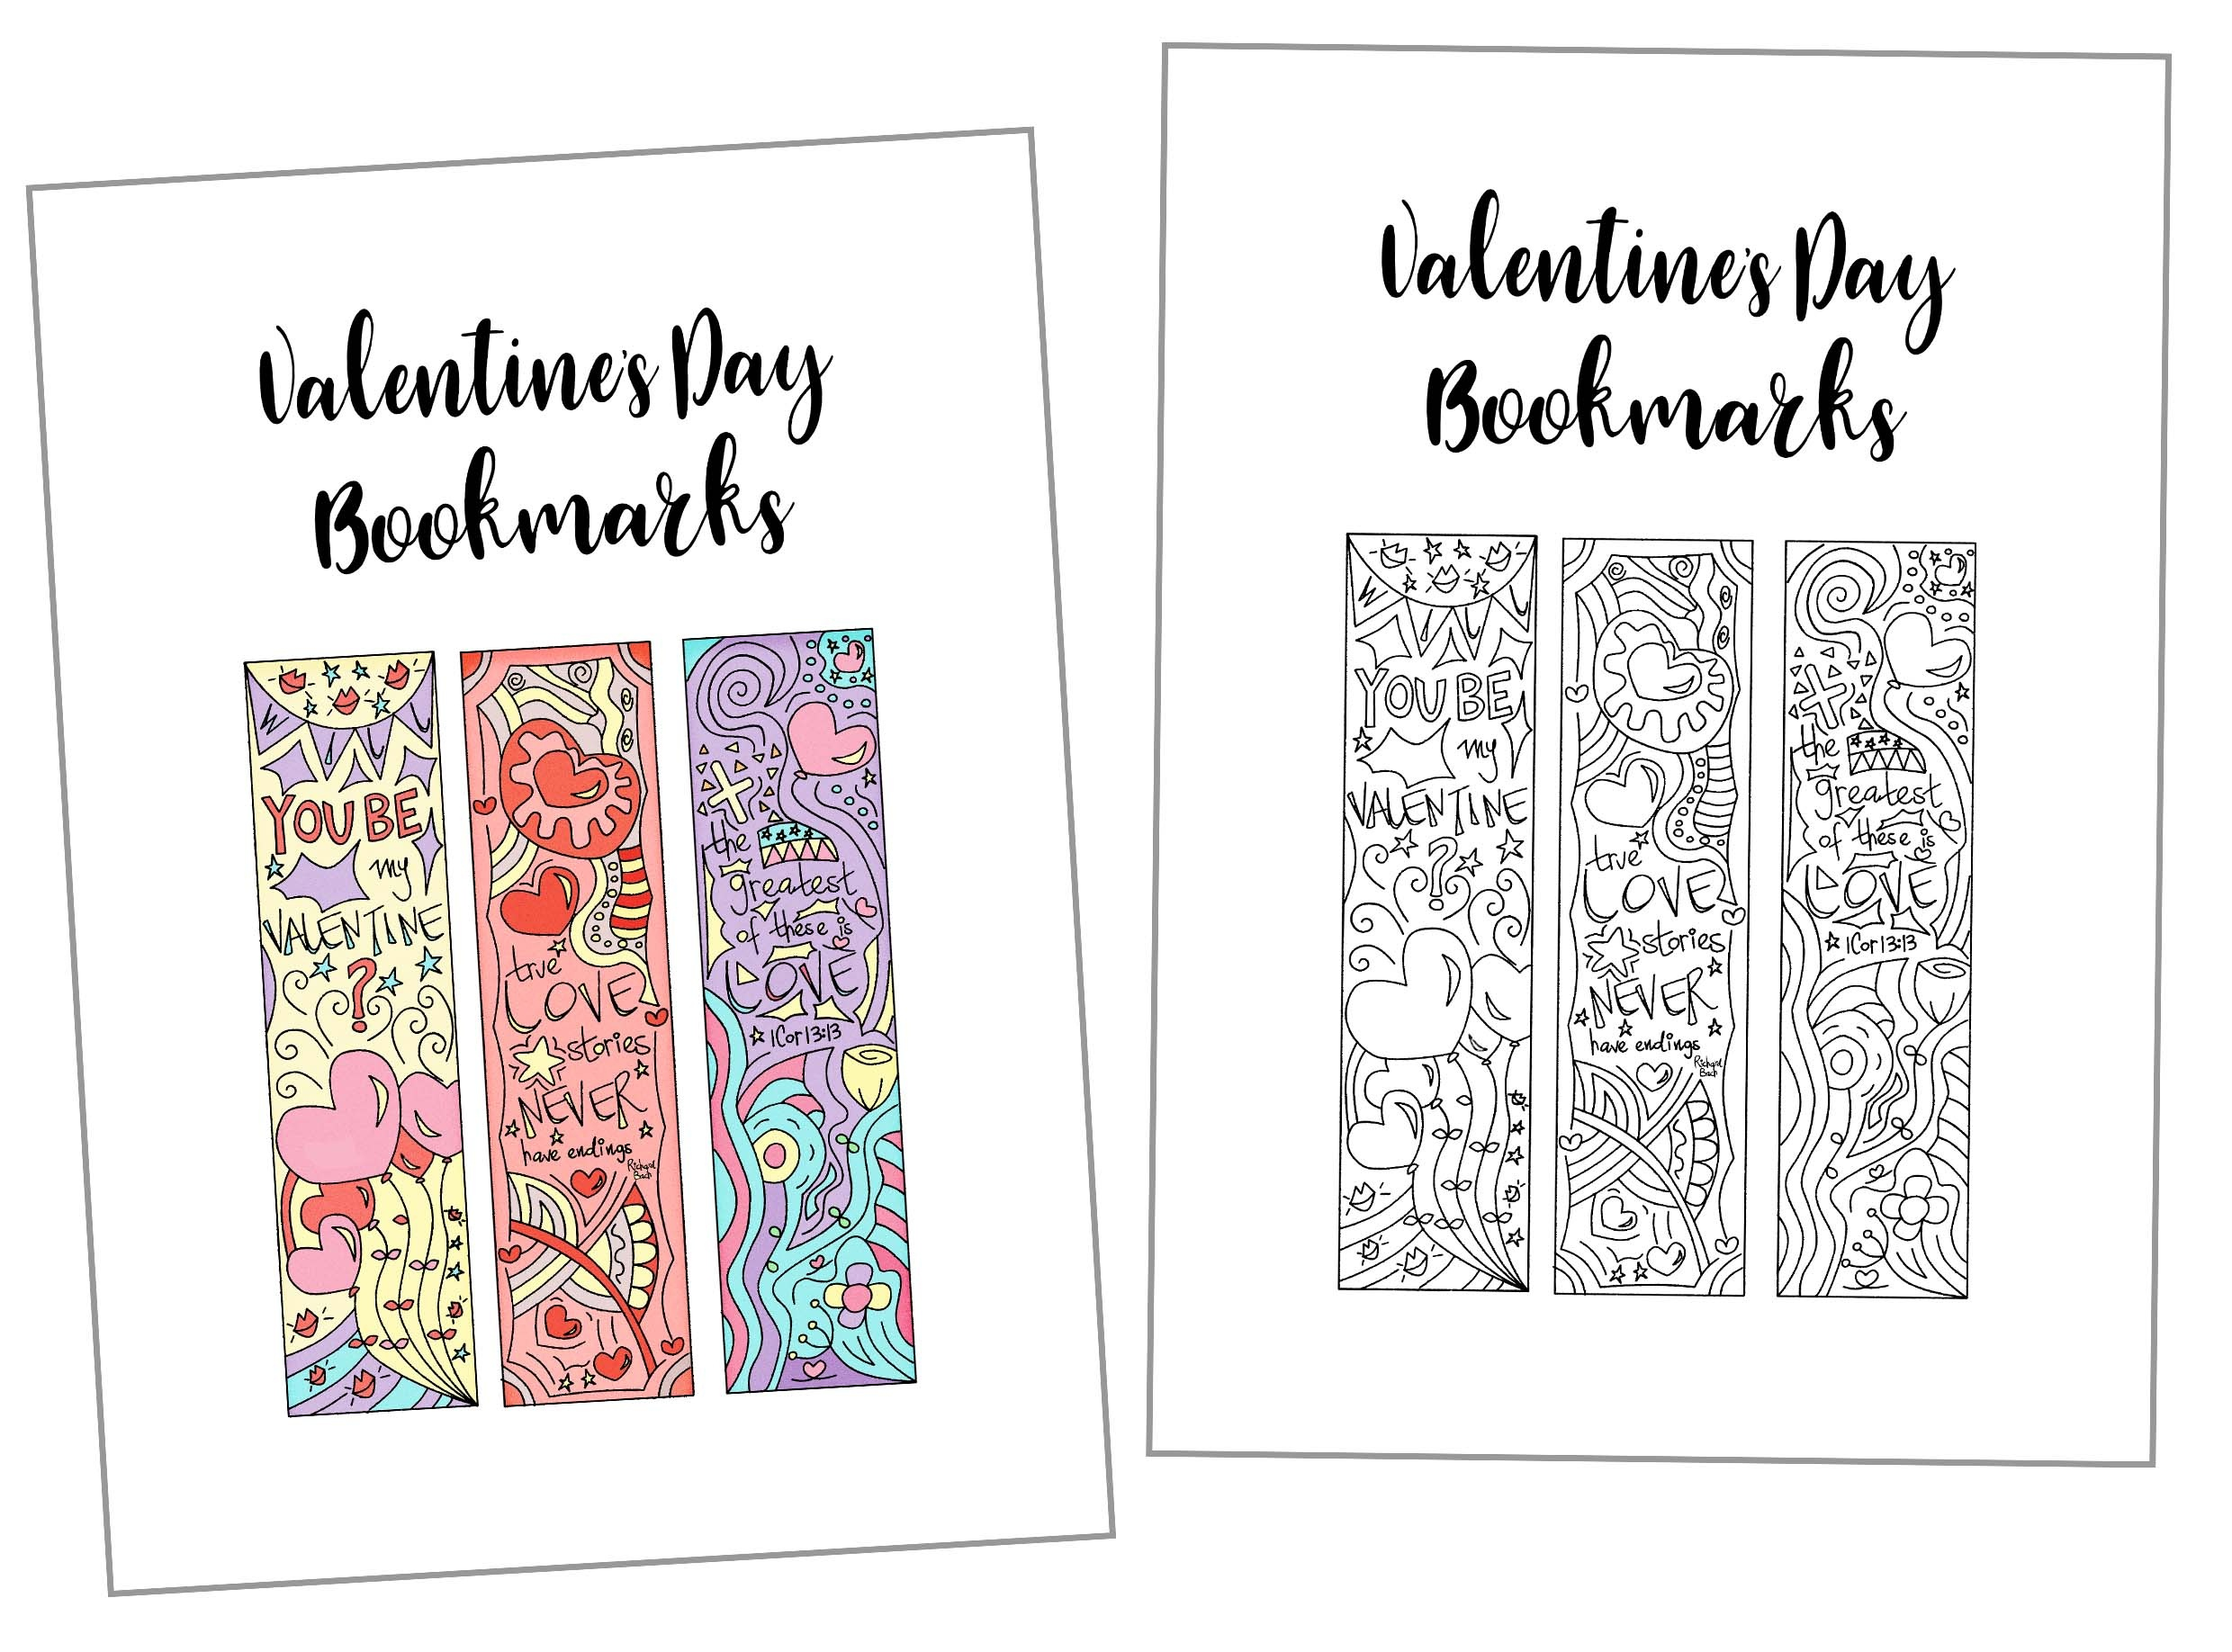 Coloring Valentine's Day Bookmarks Free Printable - Free Printable Valentine Bookmarks